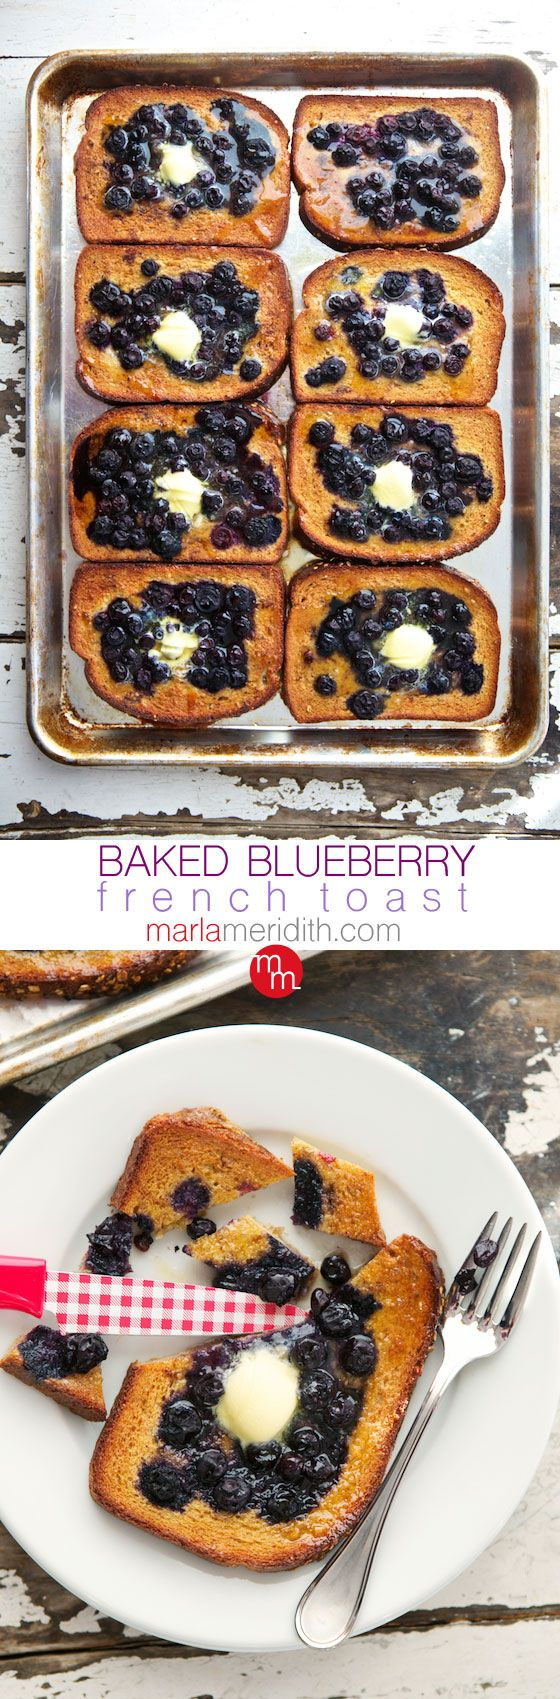 Baked Blueberry French Toast | A family favorite! MarlaMeridith.com